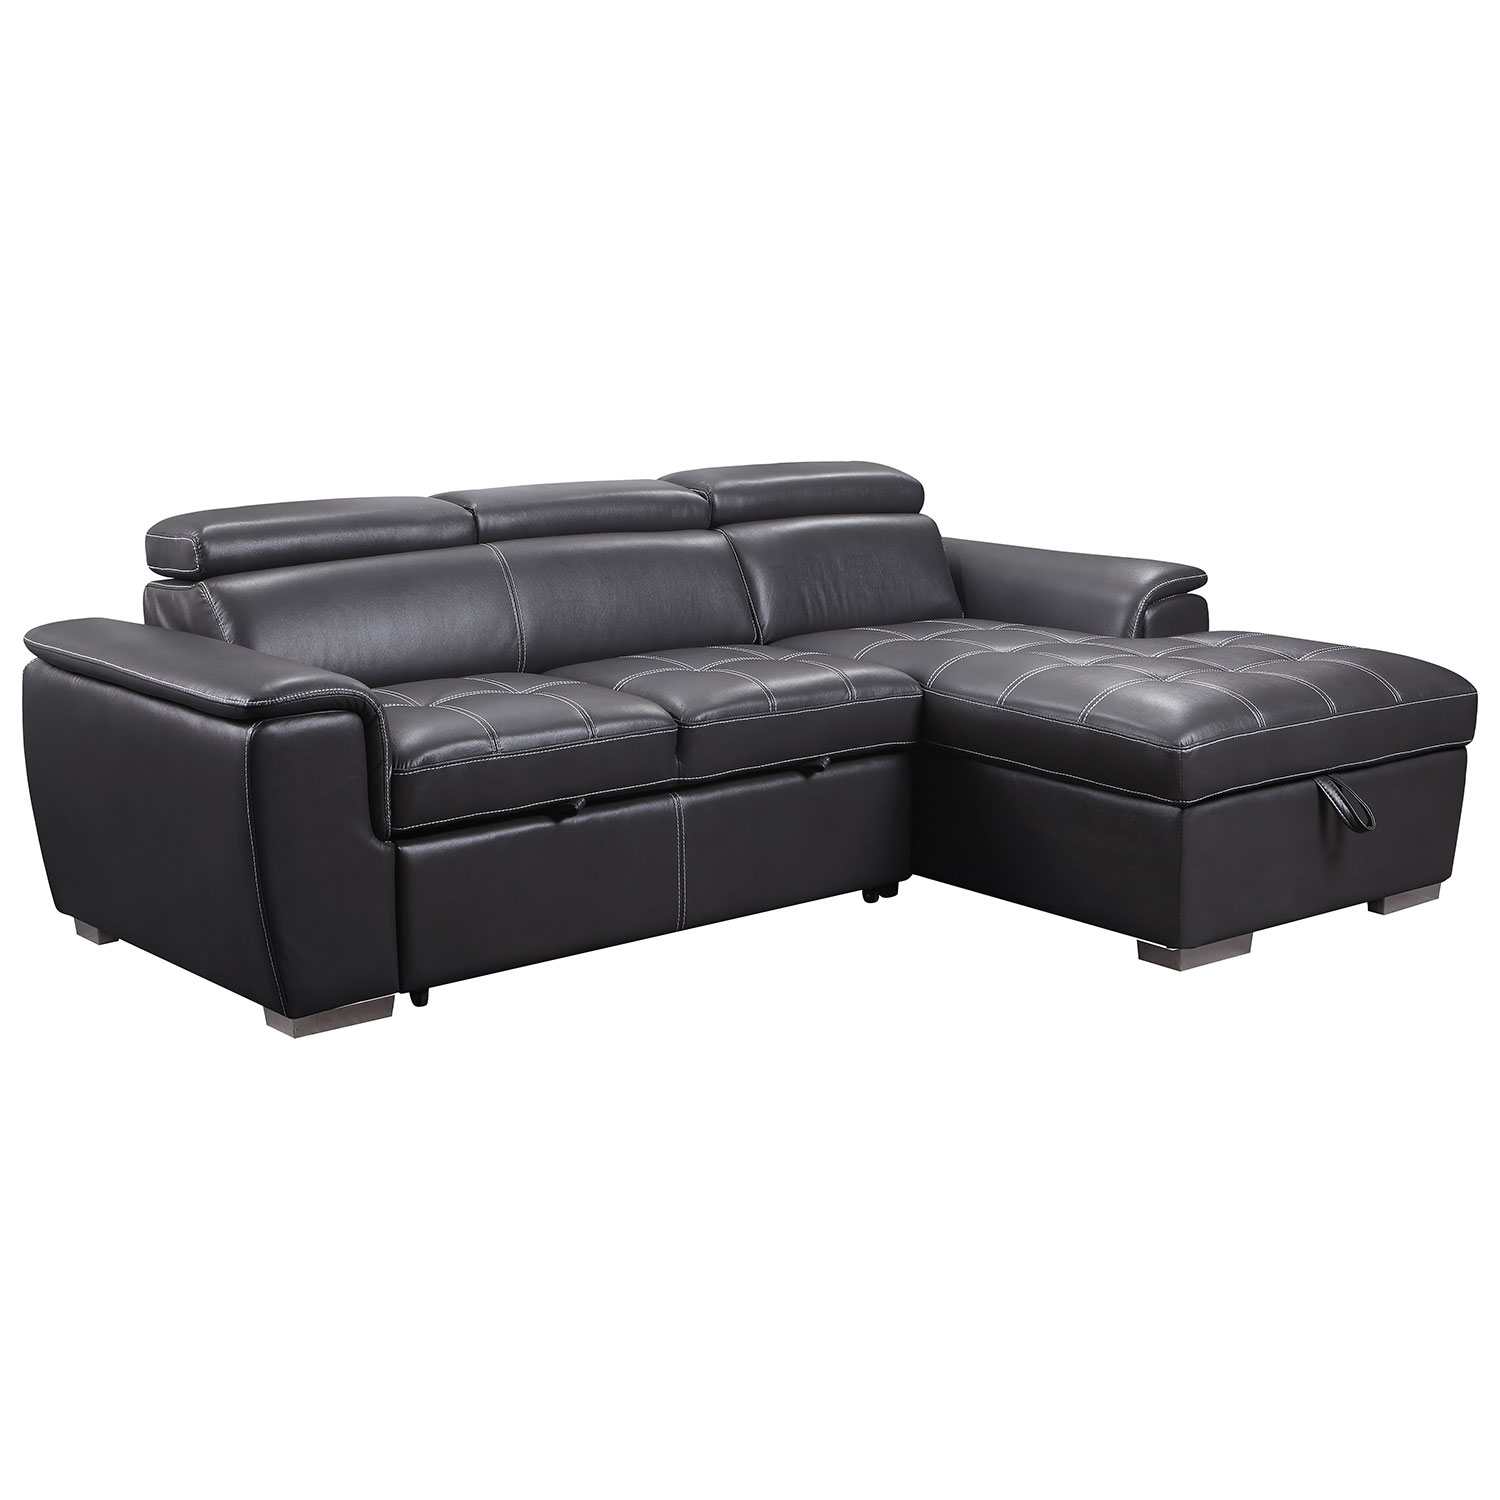 Shop Sectional Sofas line Living Room Furniture Best Buy Canada